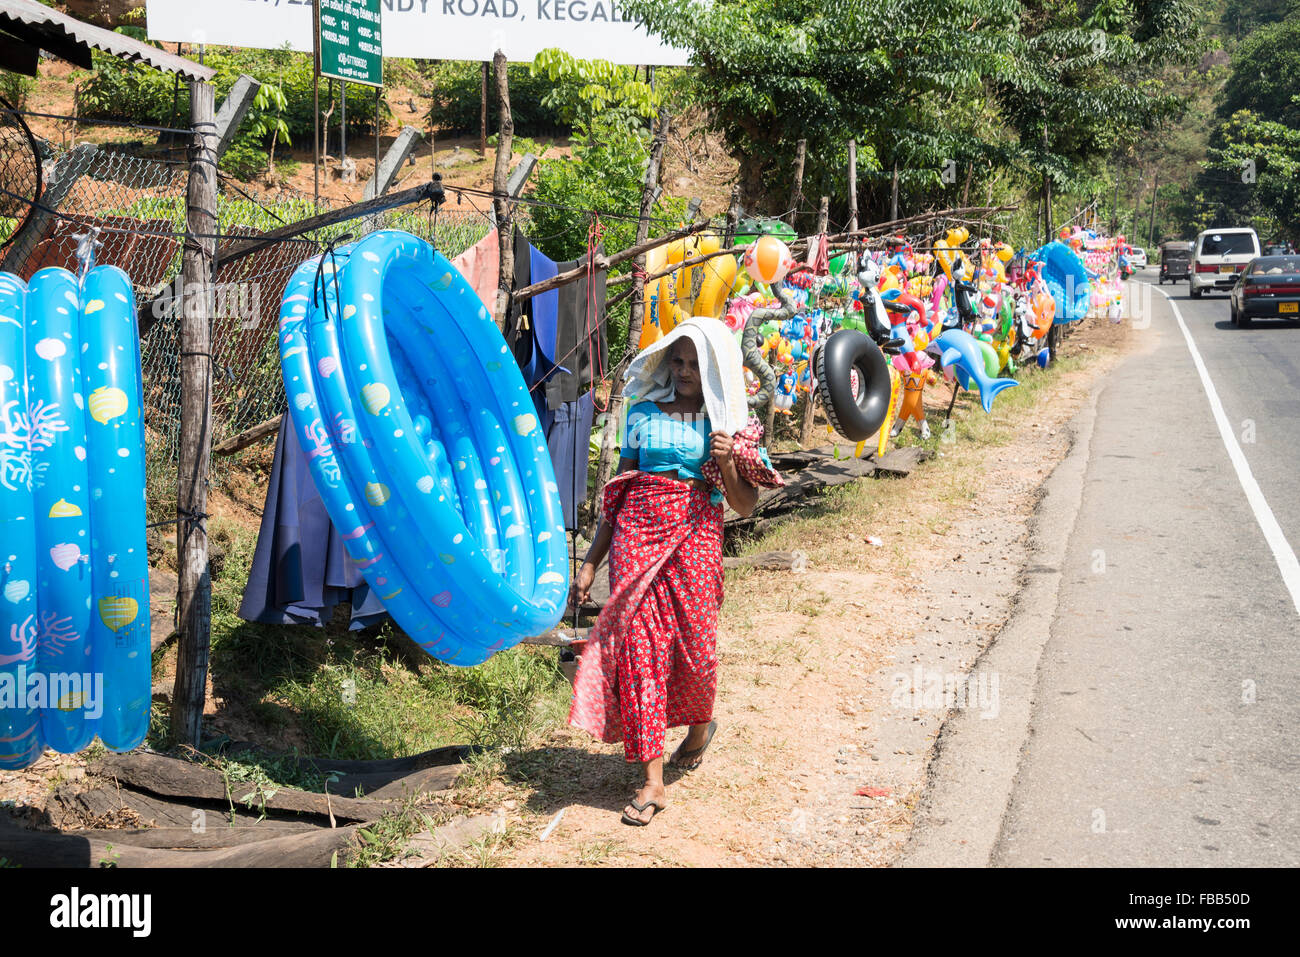 A long row of small businesses selling colourful toys beside the  A1 highway (Colombo-Kandy Highway ) in Sri Lanka. Stock Photo